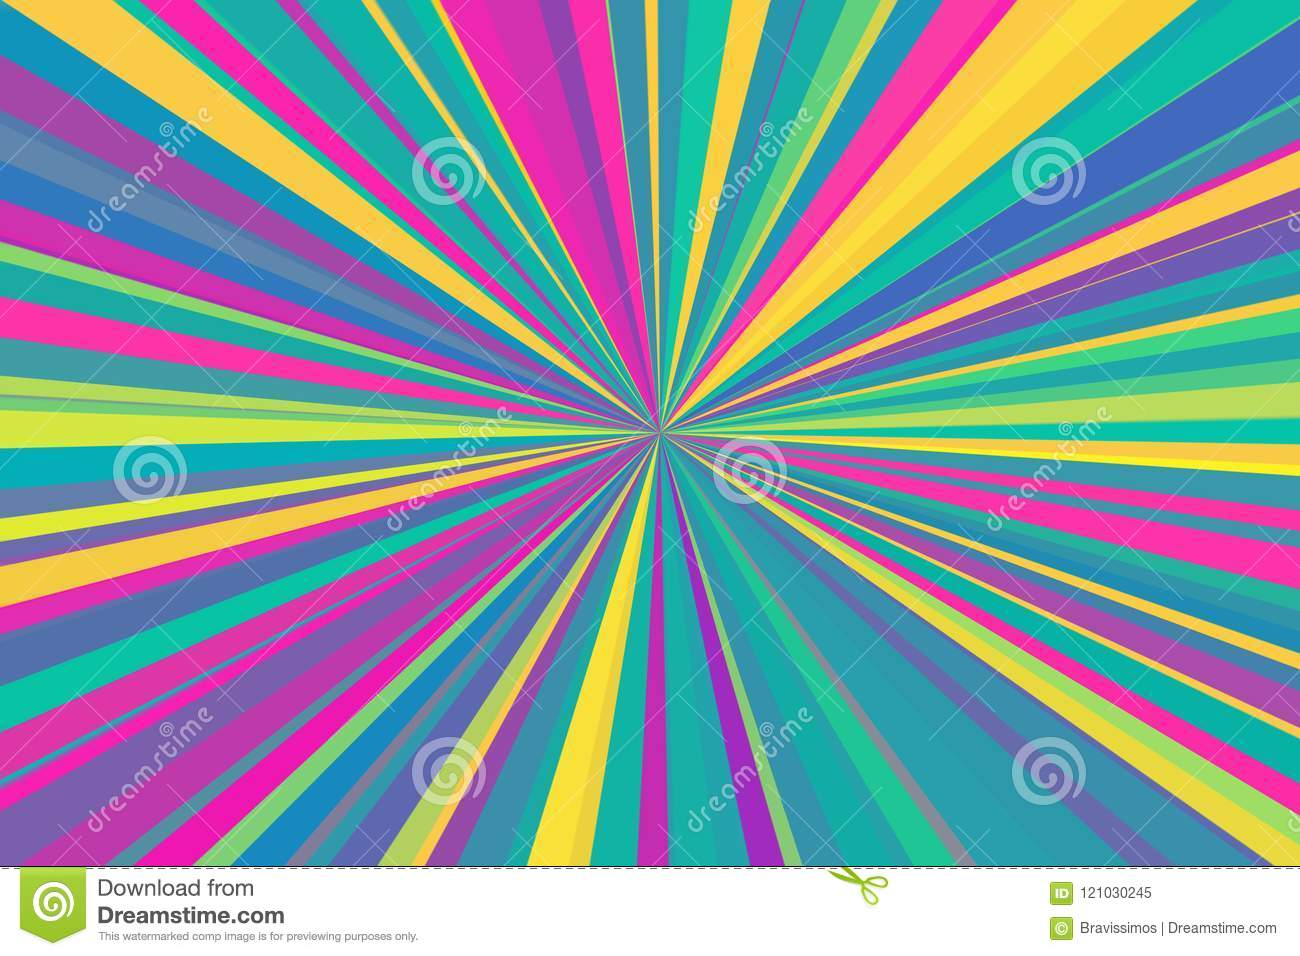 Multicolor abstract rays background. Colorful stripes beam pattern. Stylish illustration modern trend colors.